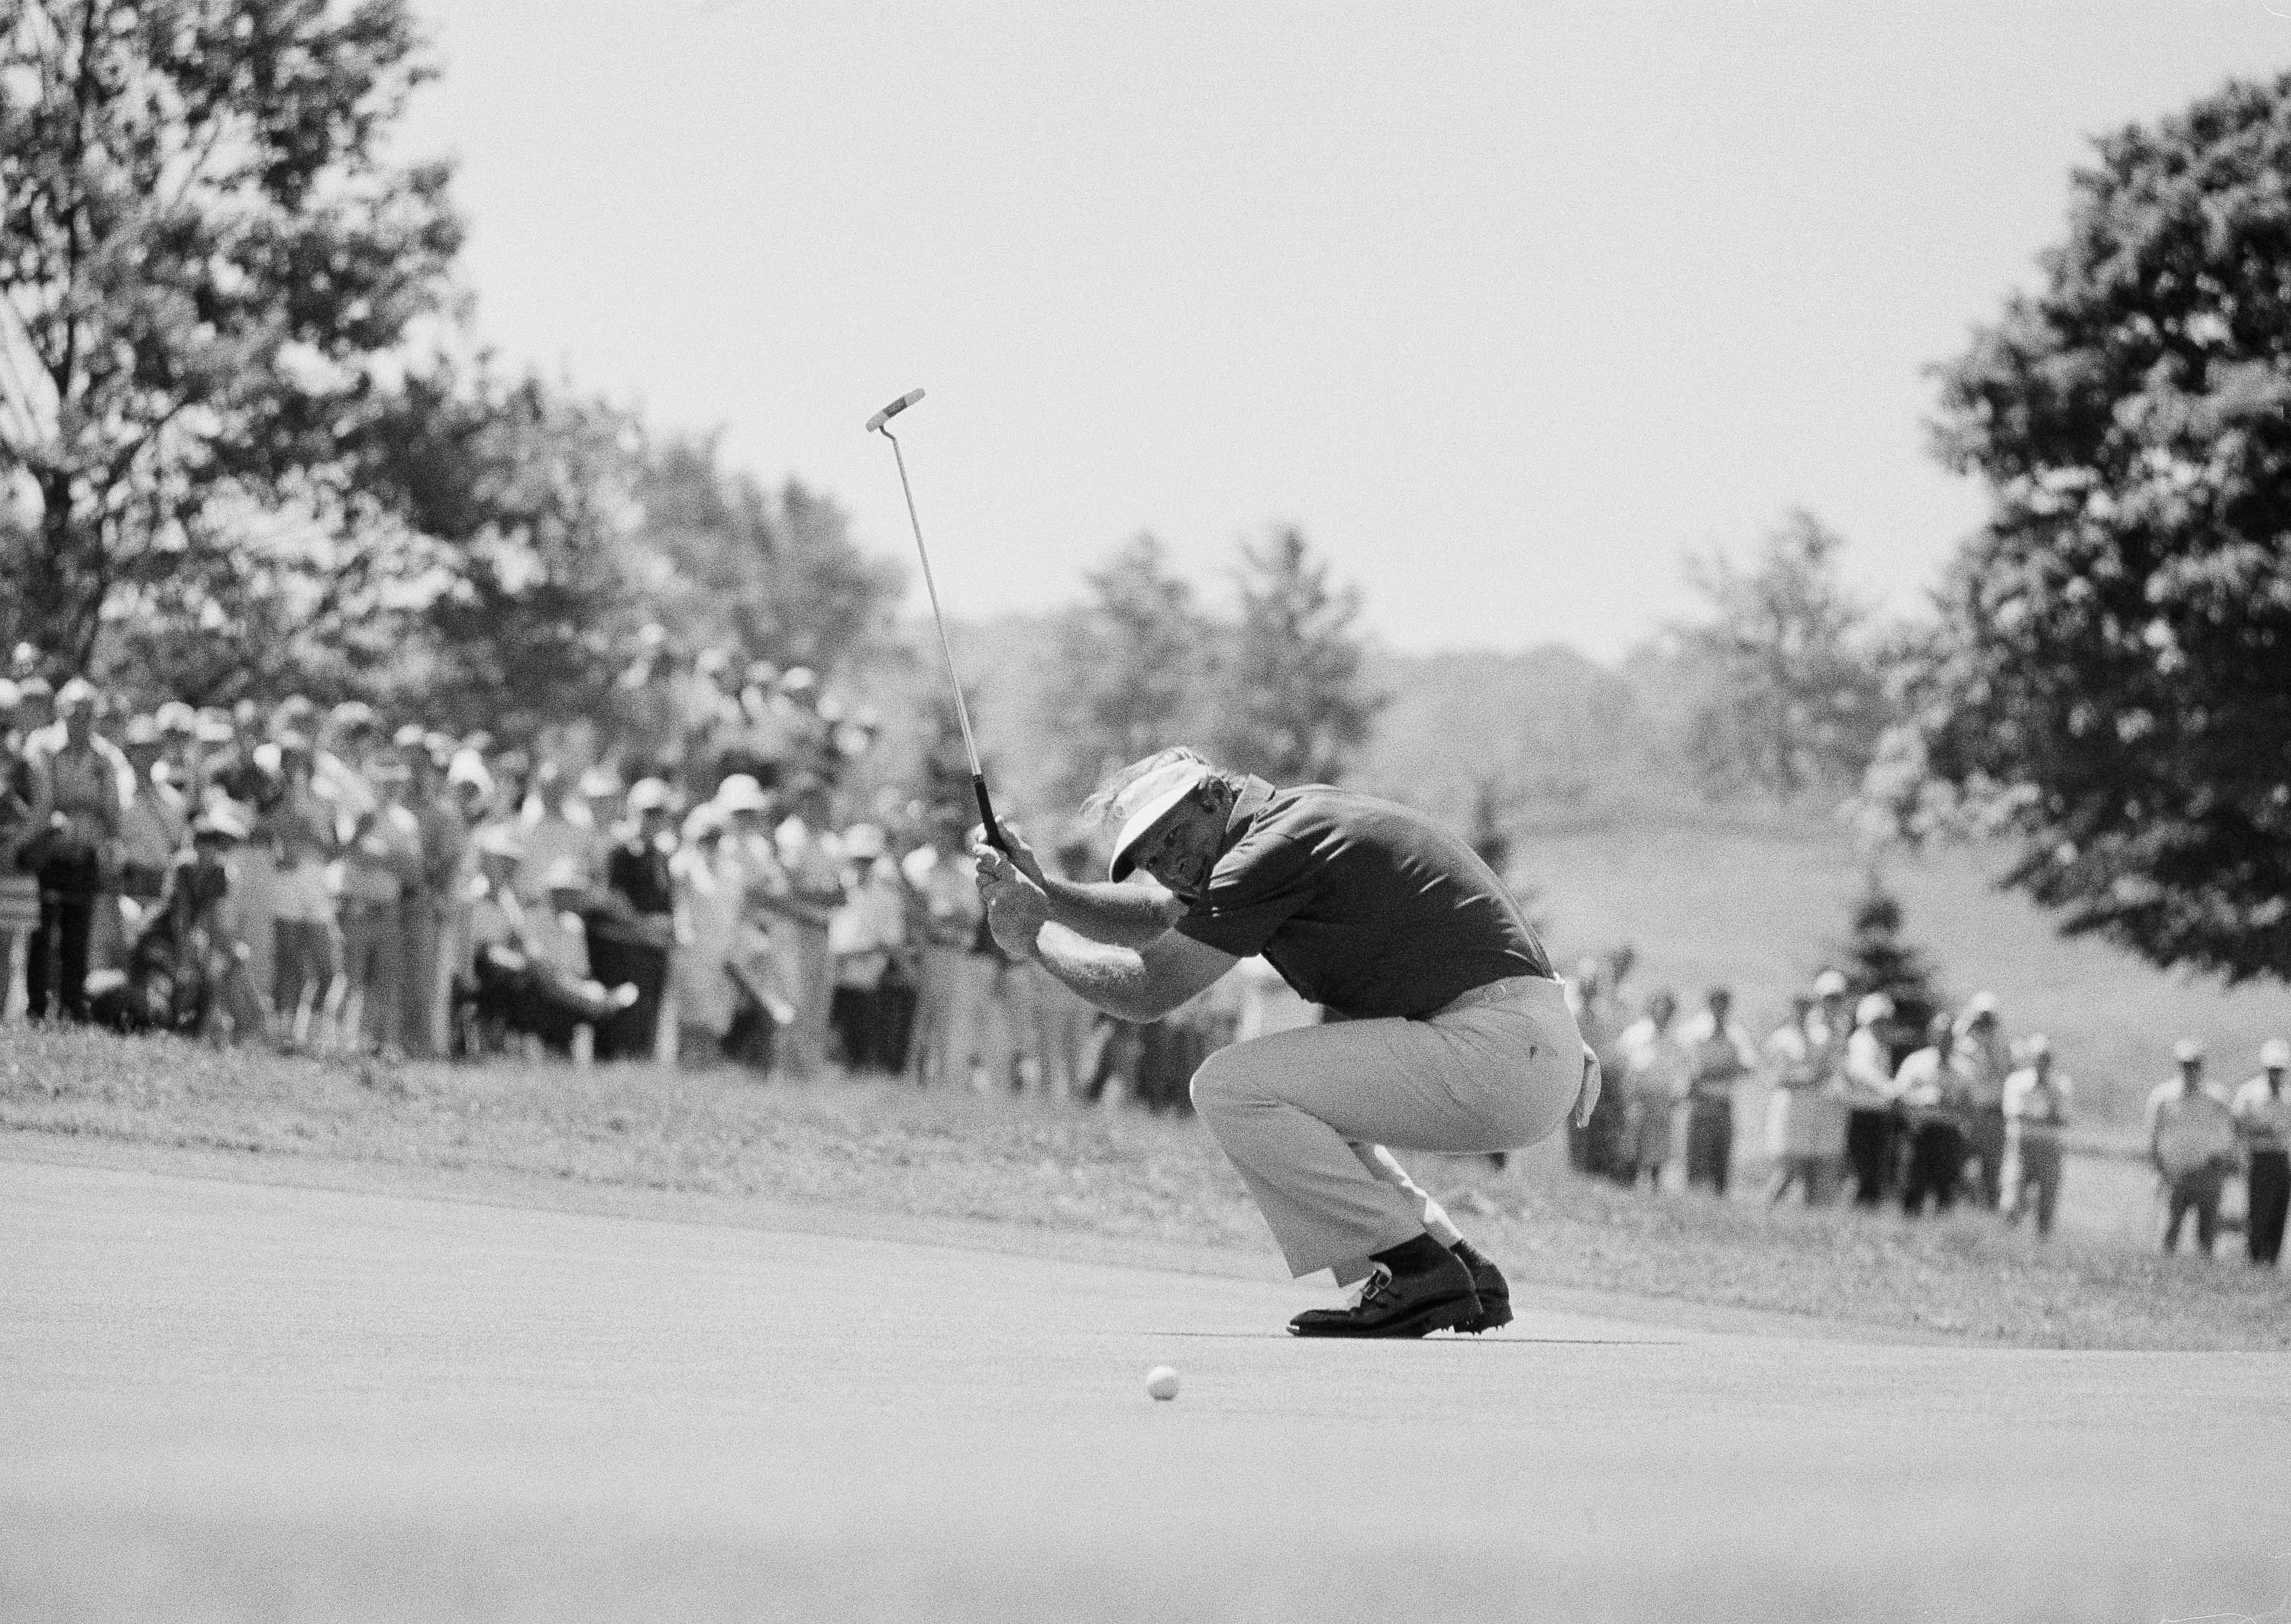 FILE - In this June 15, 1973, file photo, Arnold Palmer waves his putter and smiles after putting, and missing, a birdie on sixth green in second round of the U.S. Open Golf Championship in Oakmont, Pa. A 3-foot-long ramp invented in the 1930s could have